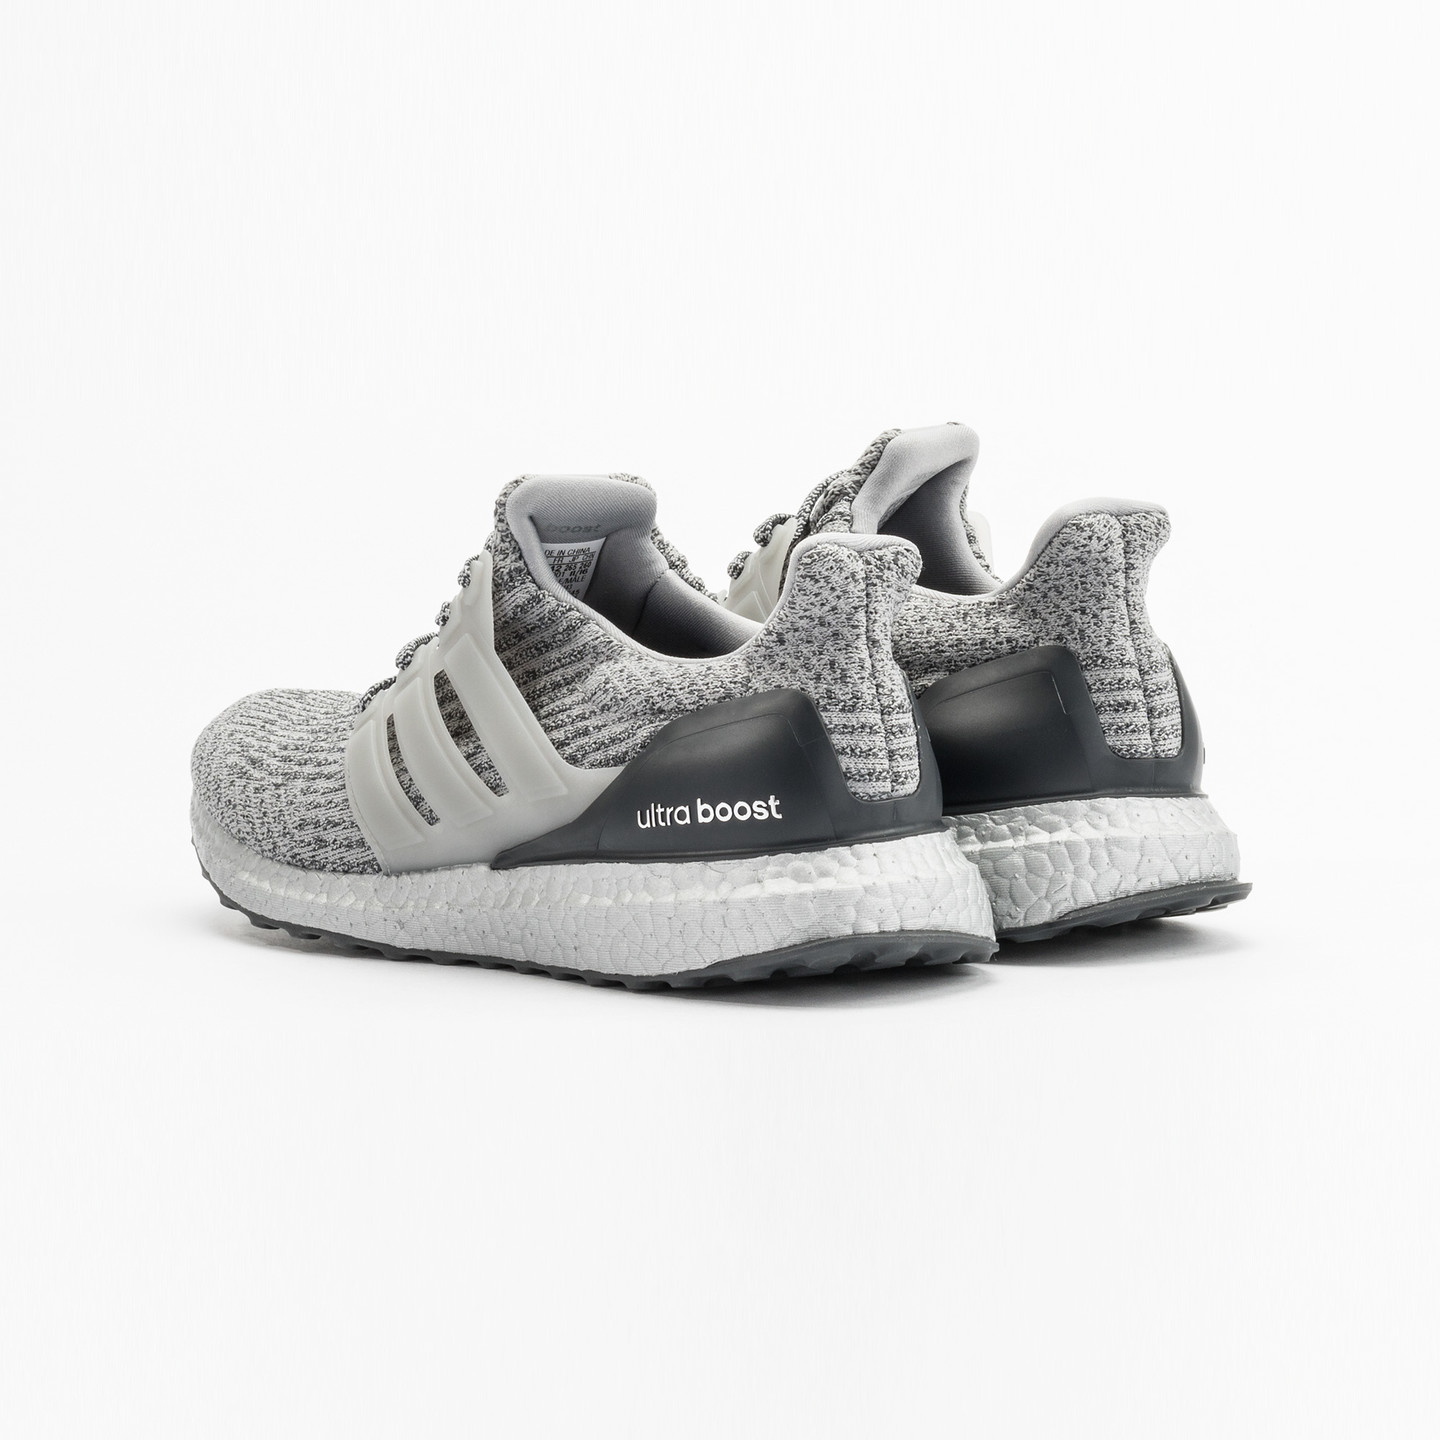 Adidas Ultra Boost 3.0 'Super Bowl' Silver Grey BA8143-42.66